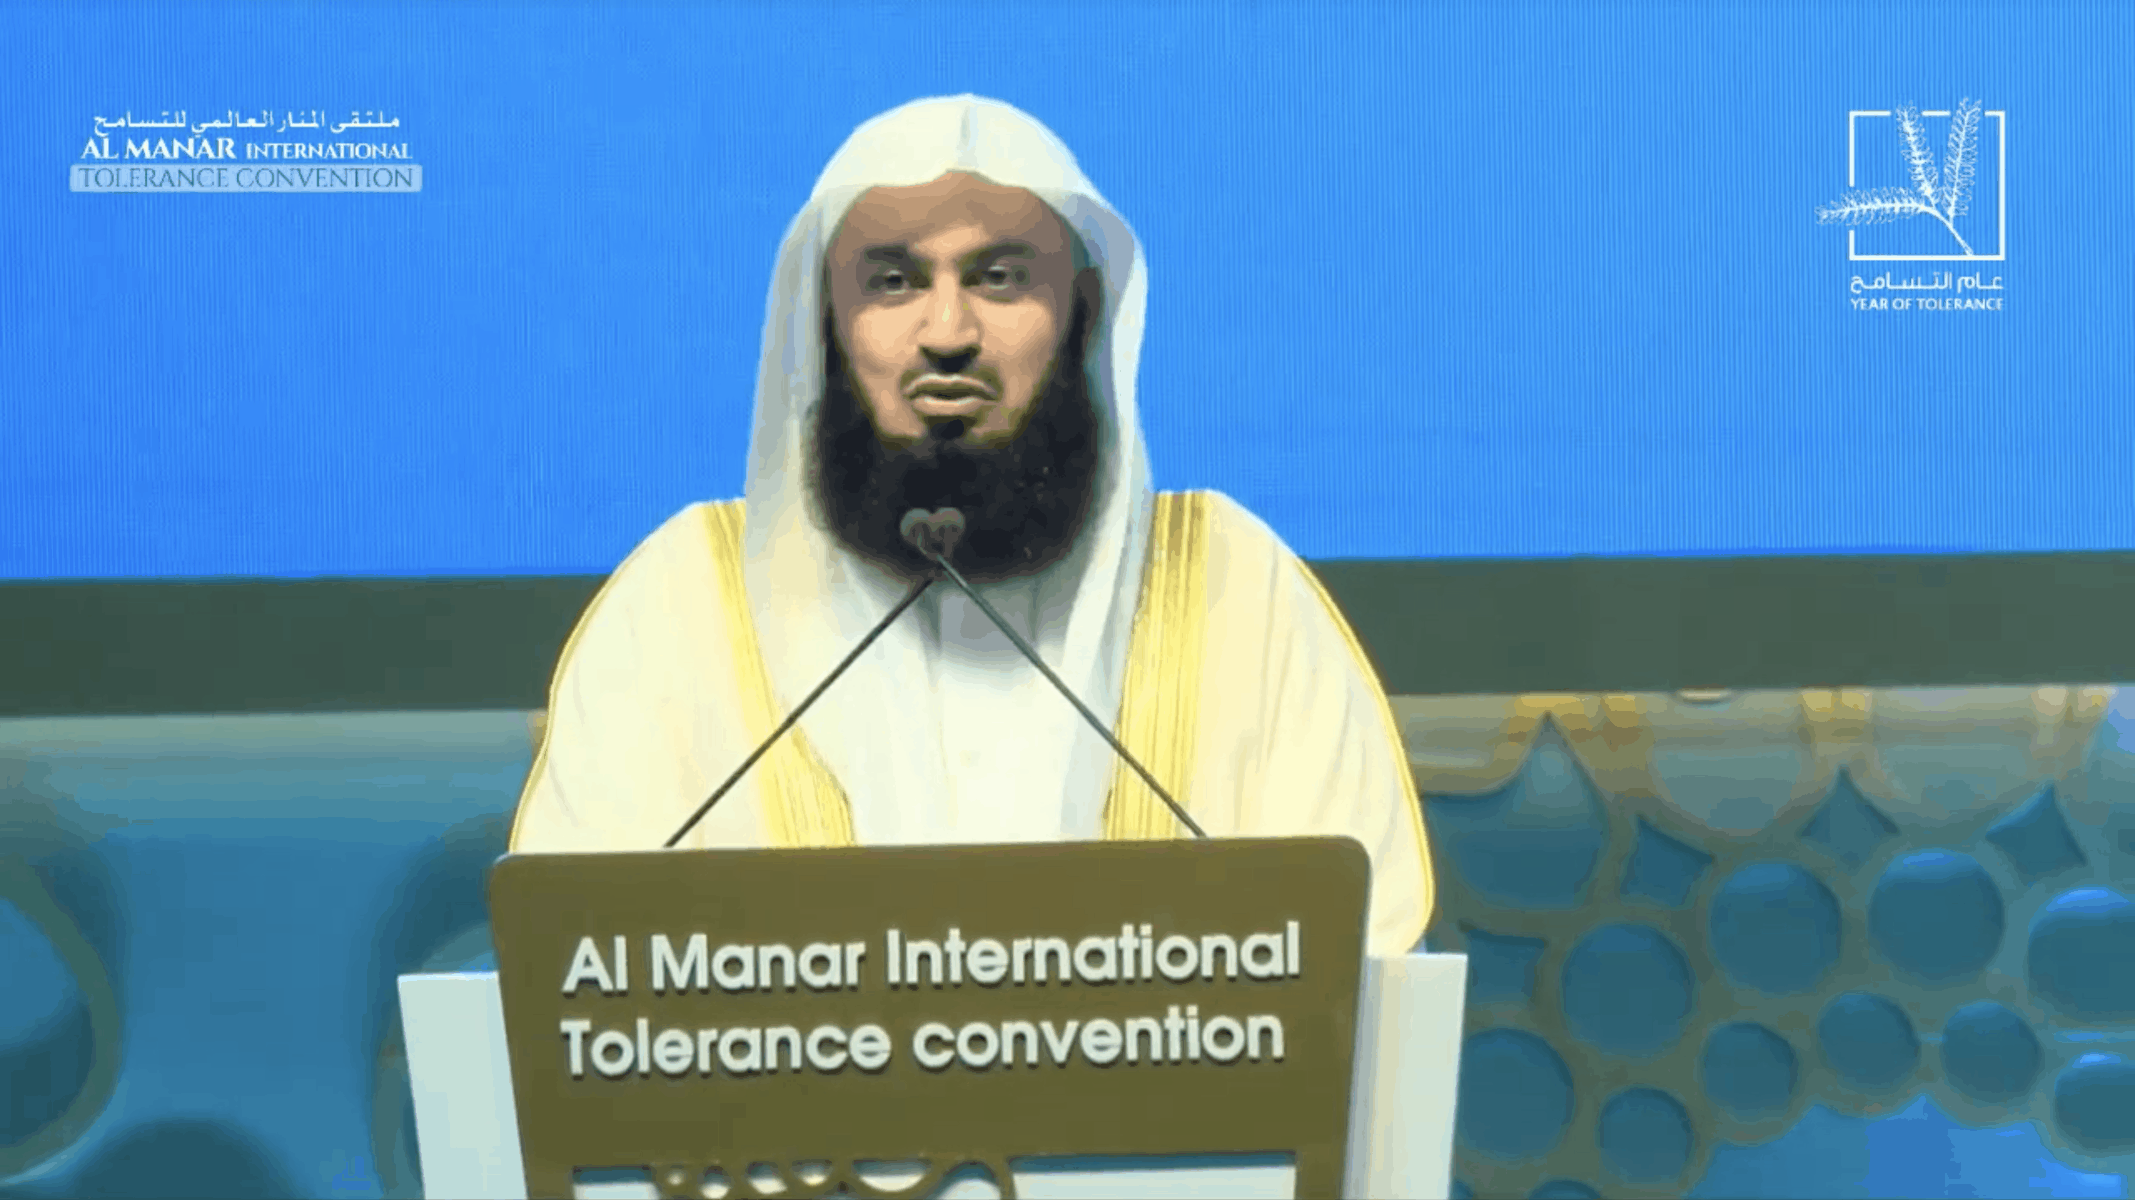 Ismail ibn Musa Menk – Importance and Methodology of Tolerance